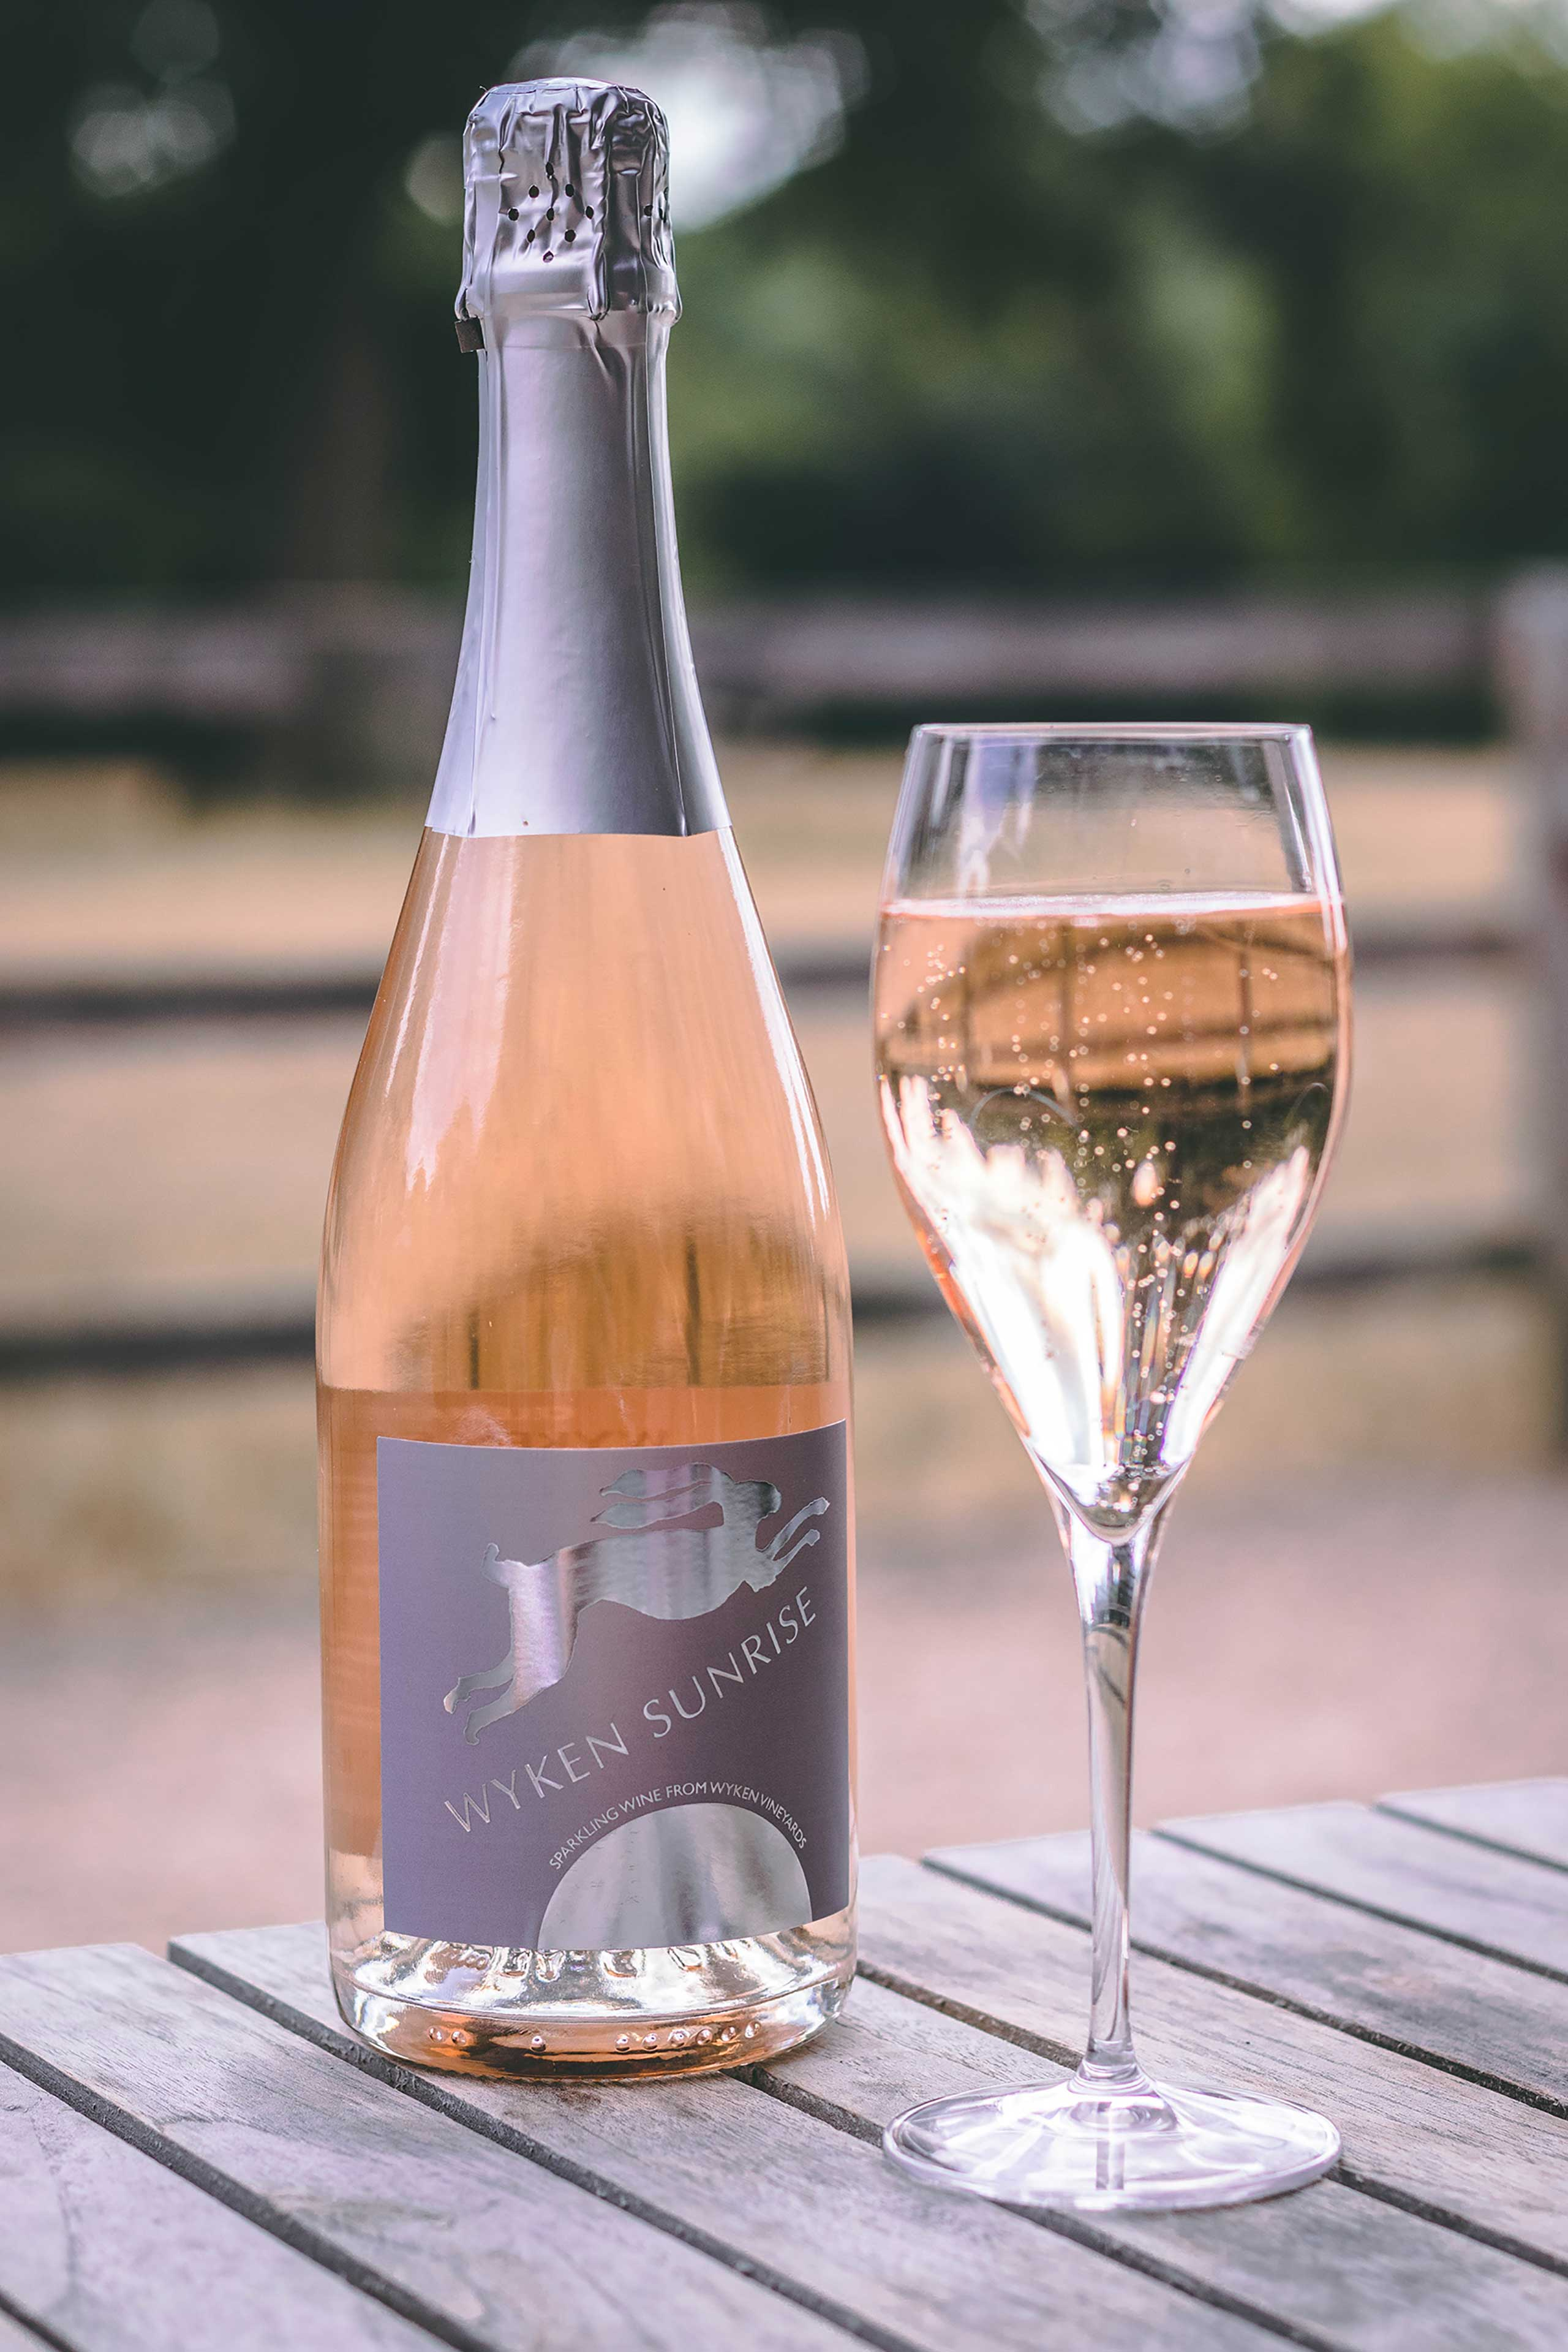 Wyken Sunrise: our limited edition vintage